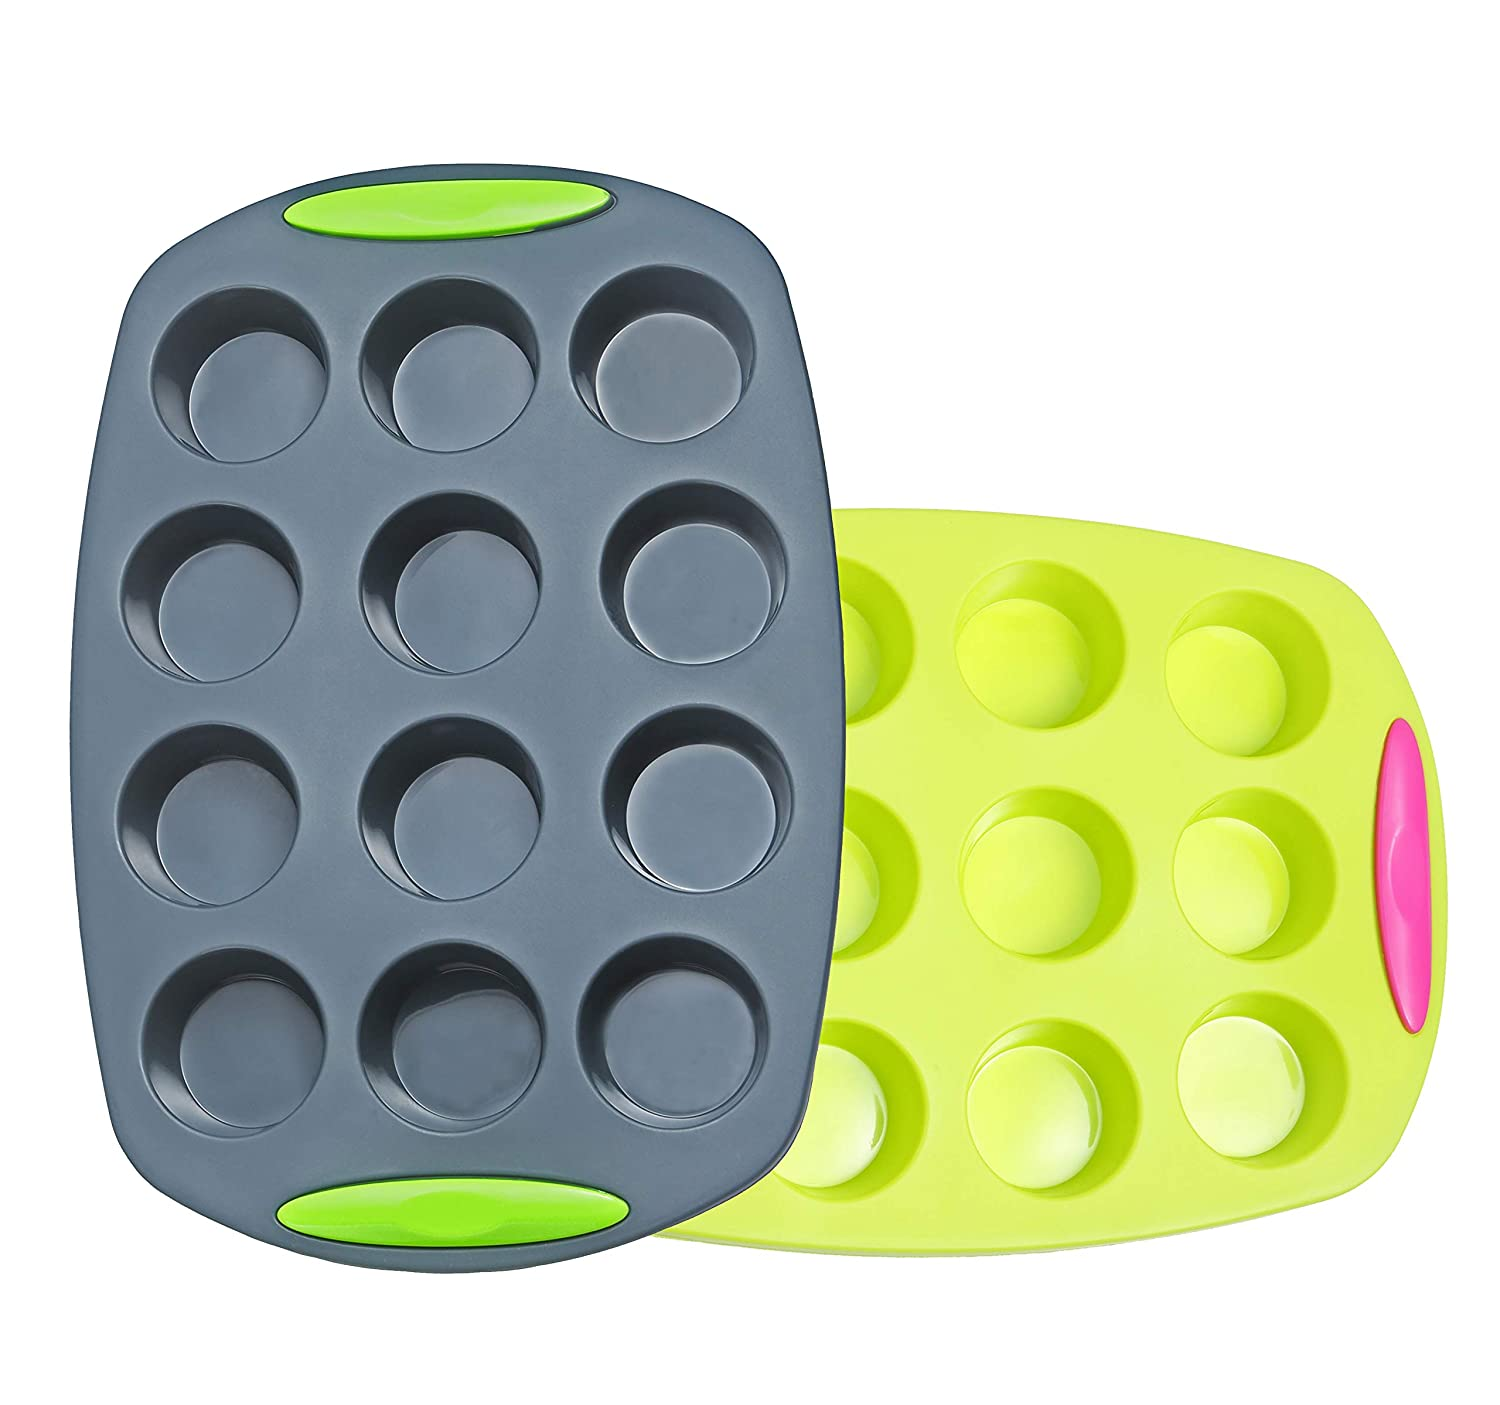 Megrocle Mini Silicone Muffin Pan Set of 2, Non Stick 12 Cups Cupcake Pan, BPA-Free Food Grade Silicone Baking Molds, Oven-Microwave-Dishwasher Safe Silicone Muffin Tin Cake Pans